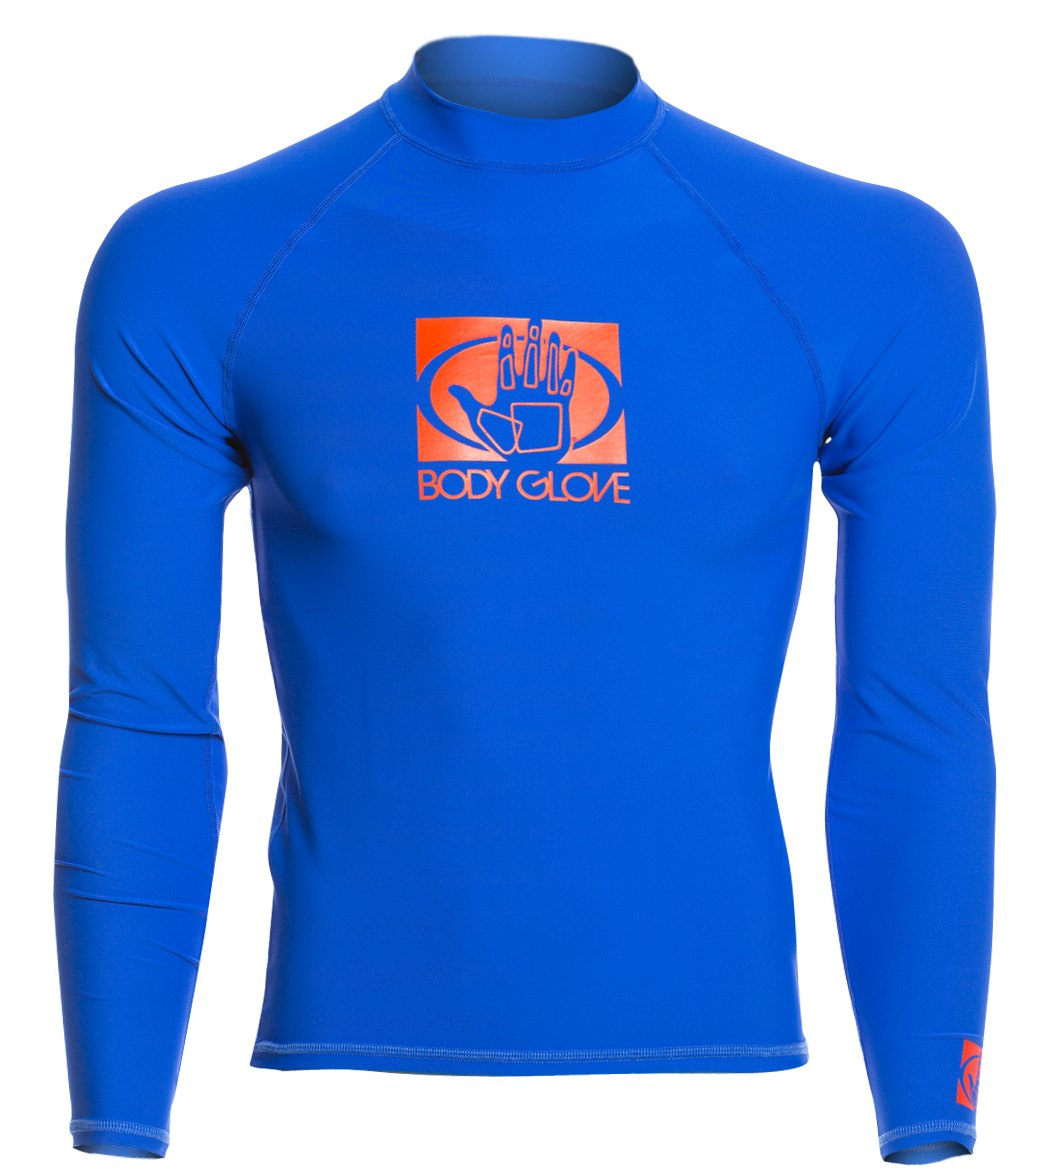 0f55251928 Body Glove Men's Basic Long Sleeve Fitted Rash Guard at SwimOutlet.com